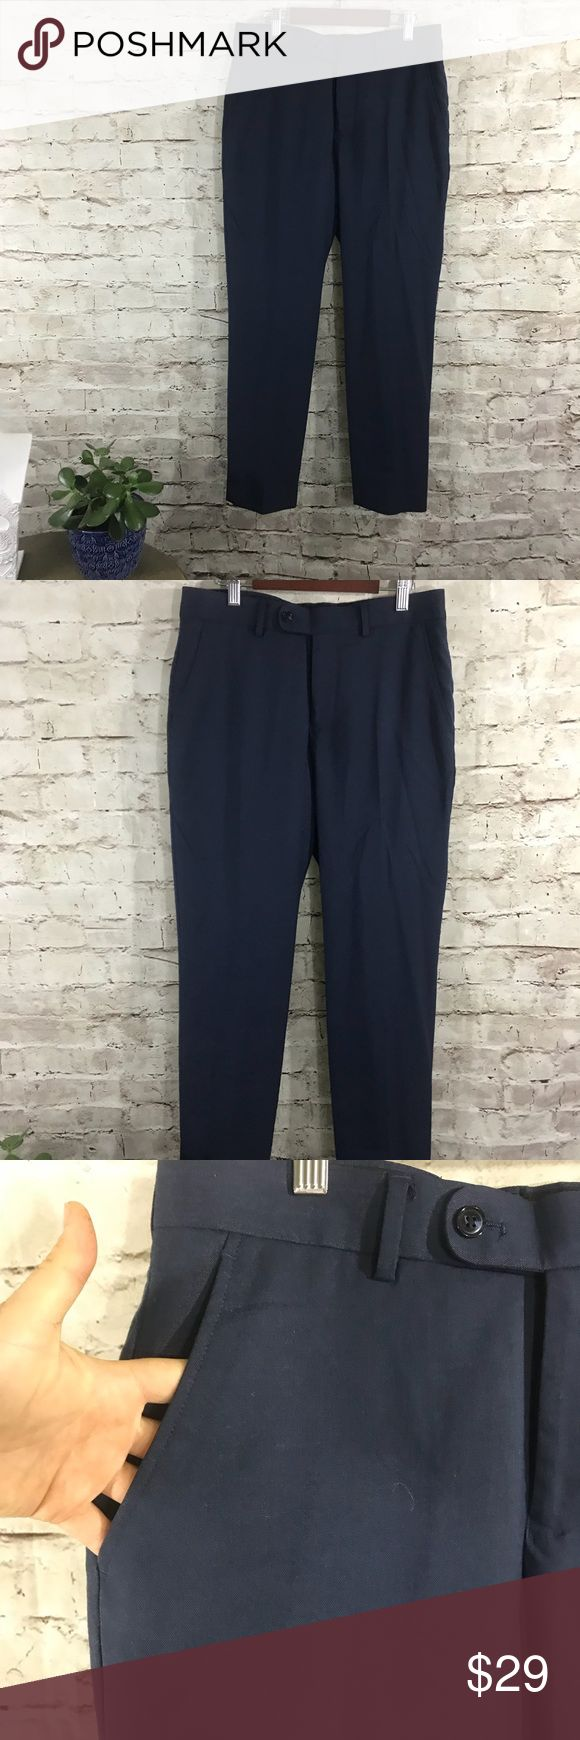 Perry Ellis navy blue pants Navy blue Perry Ellis portfolio navy blue dress pants. Perry Ellis Pants Ankle & Cropped